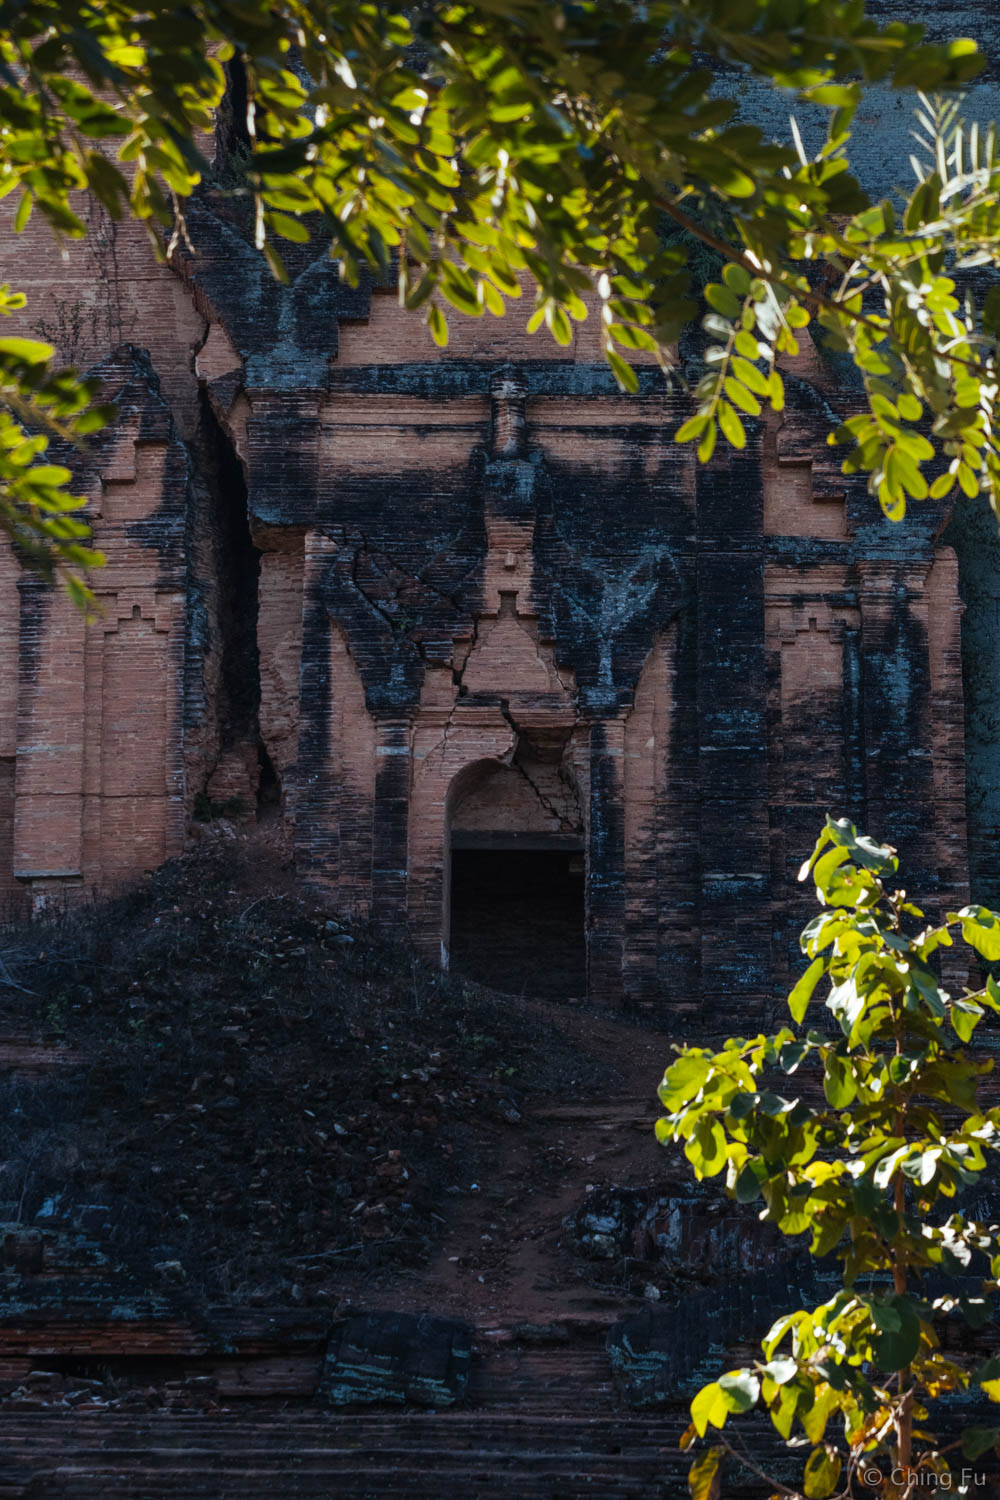 Another entrance to Mingun Pahtodawgyi